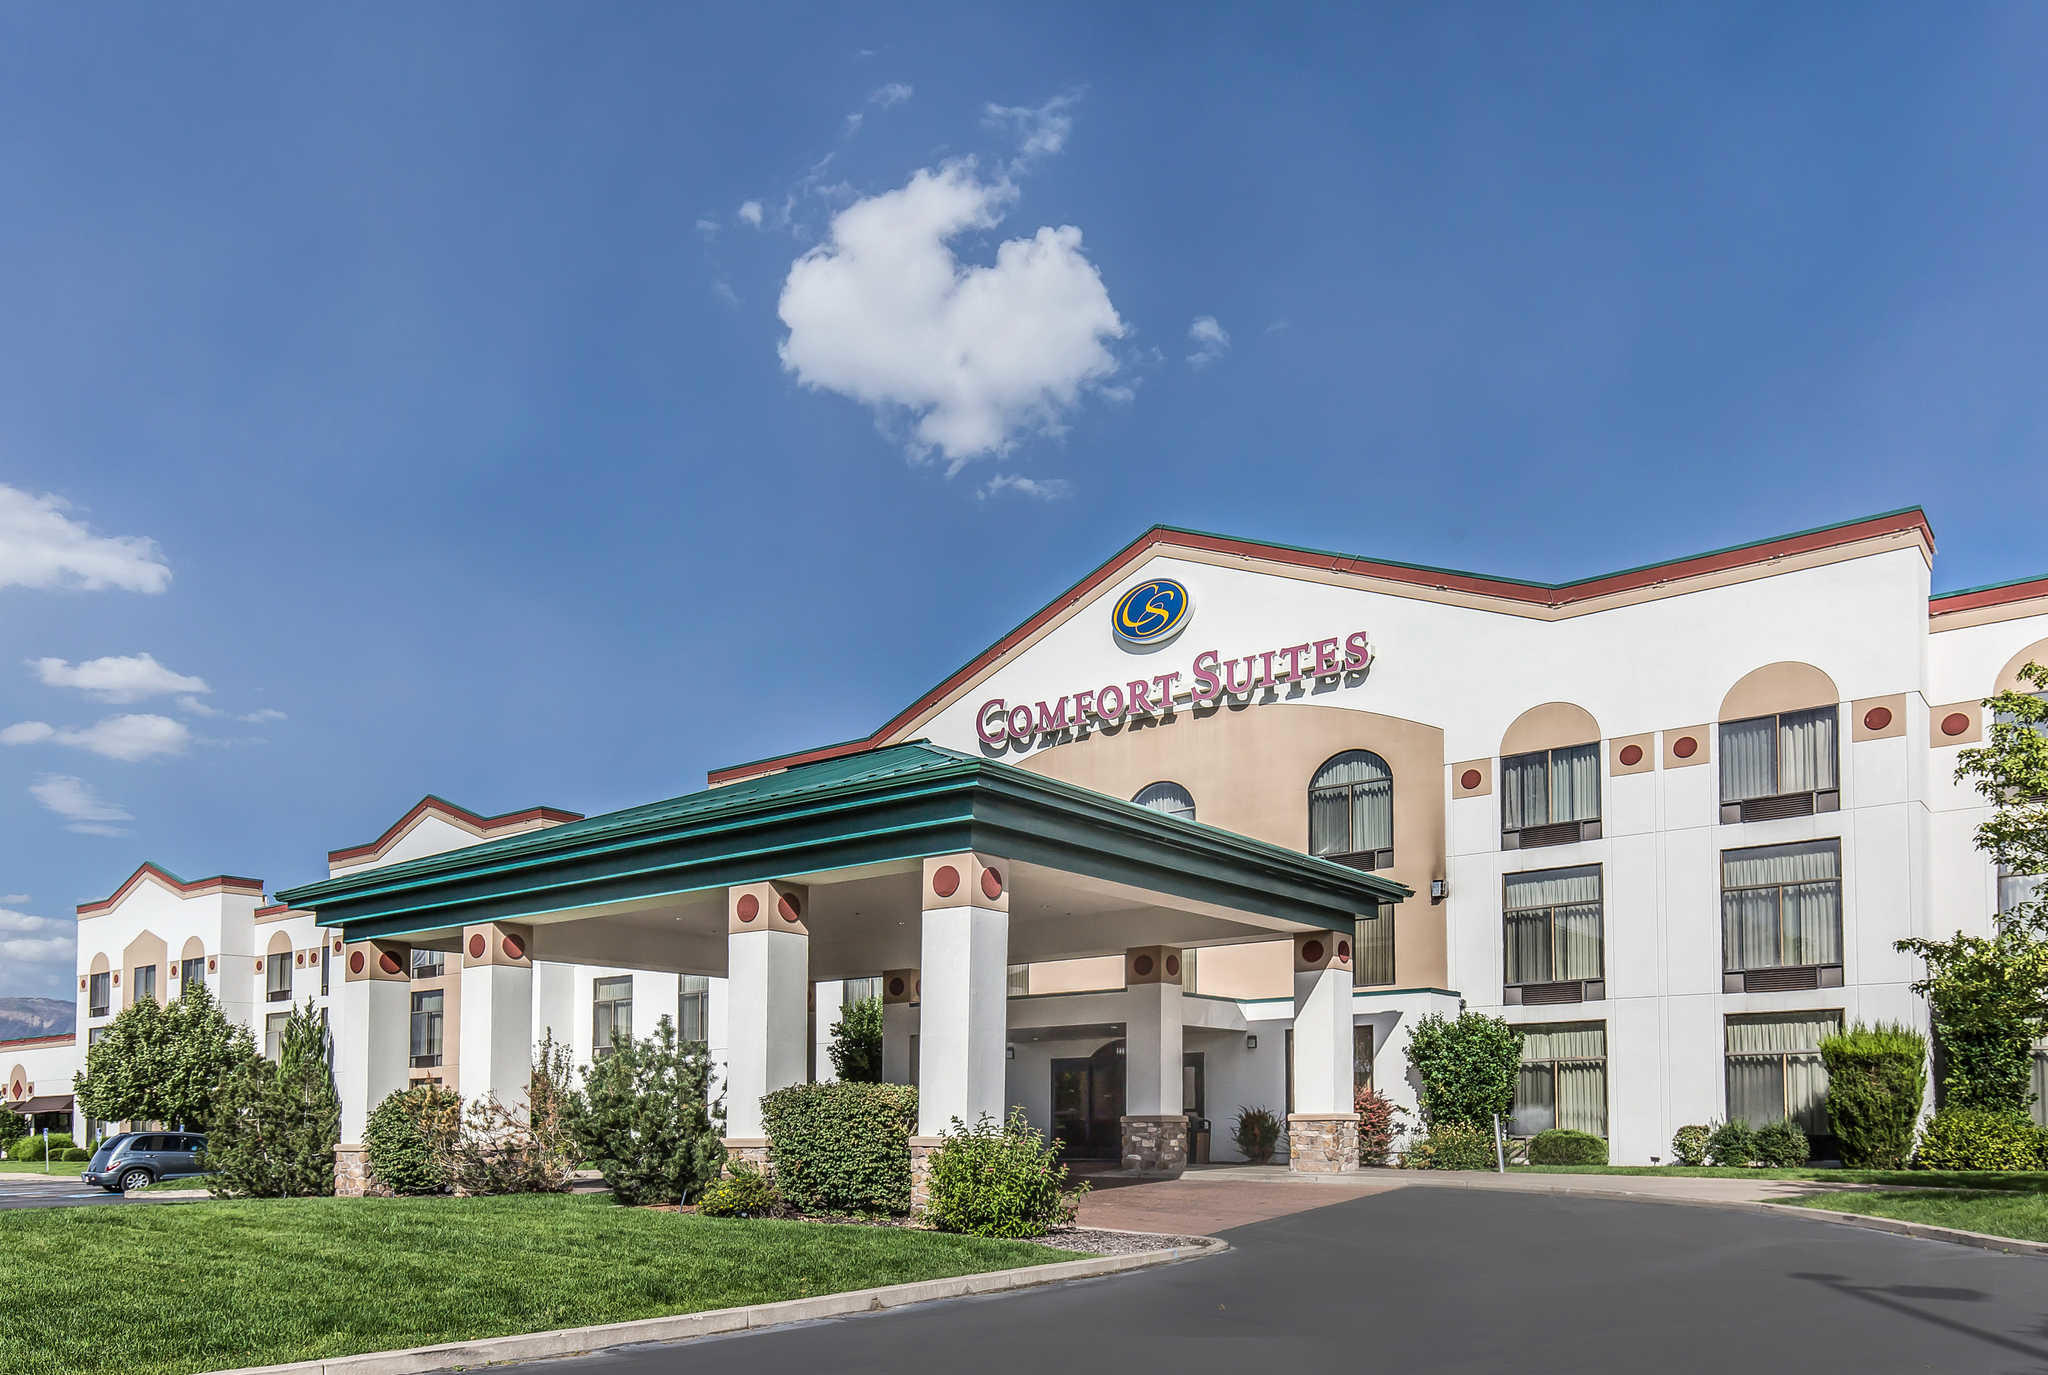 Comfort Suites Ogden Ut Business Page